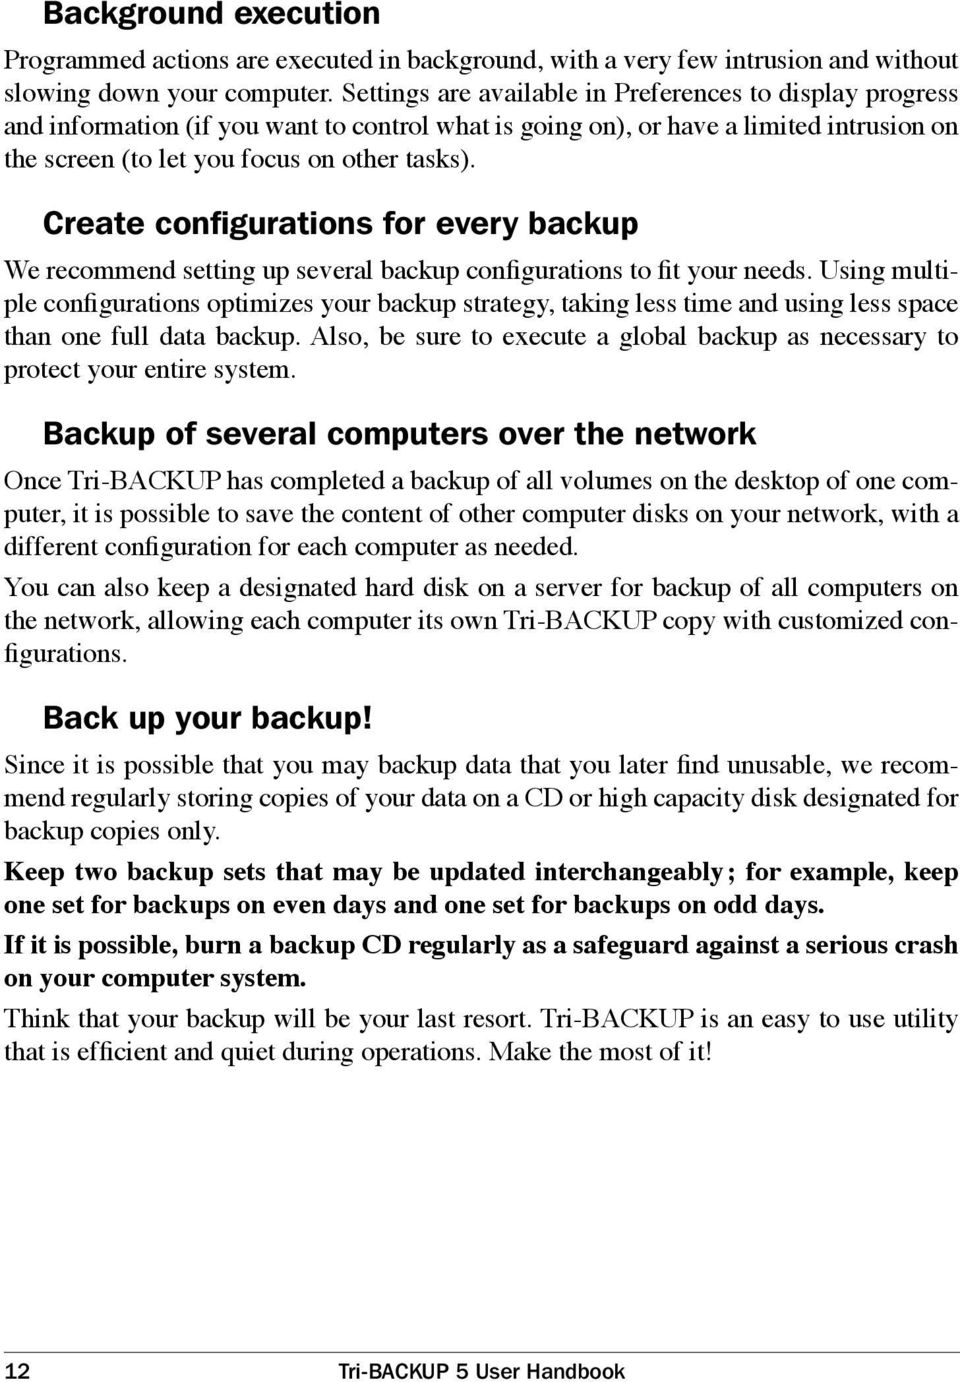 Create configurations for every backup We recommend setting up several backup configurations to fit your needs.